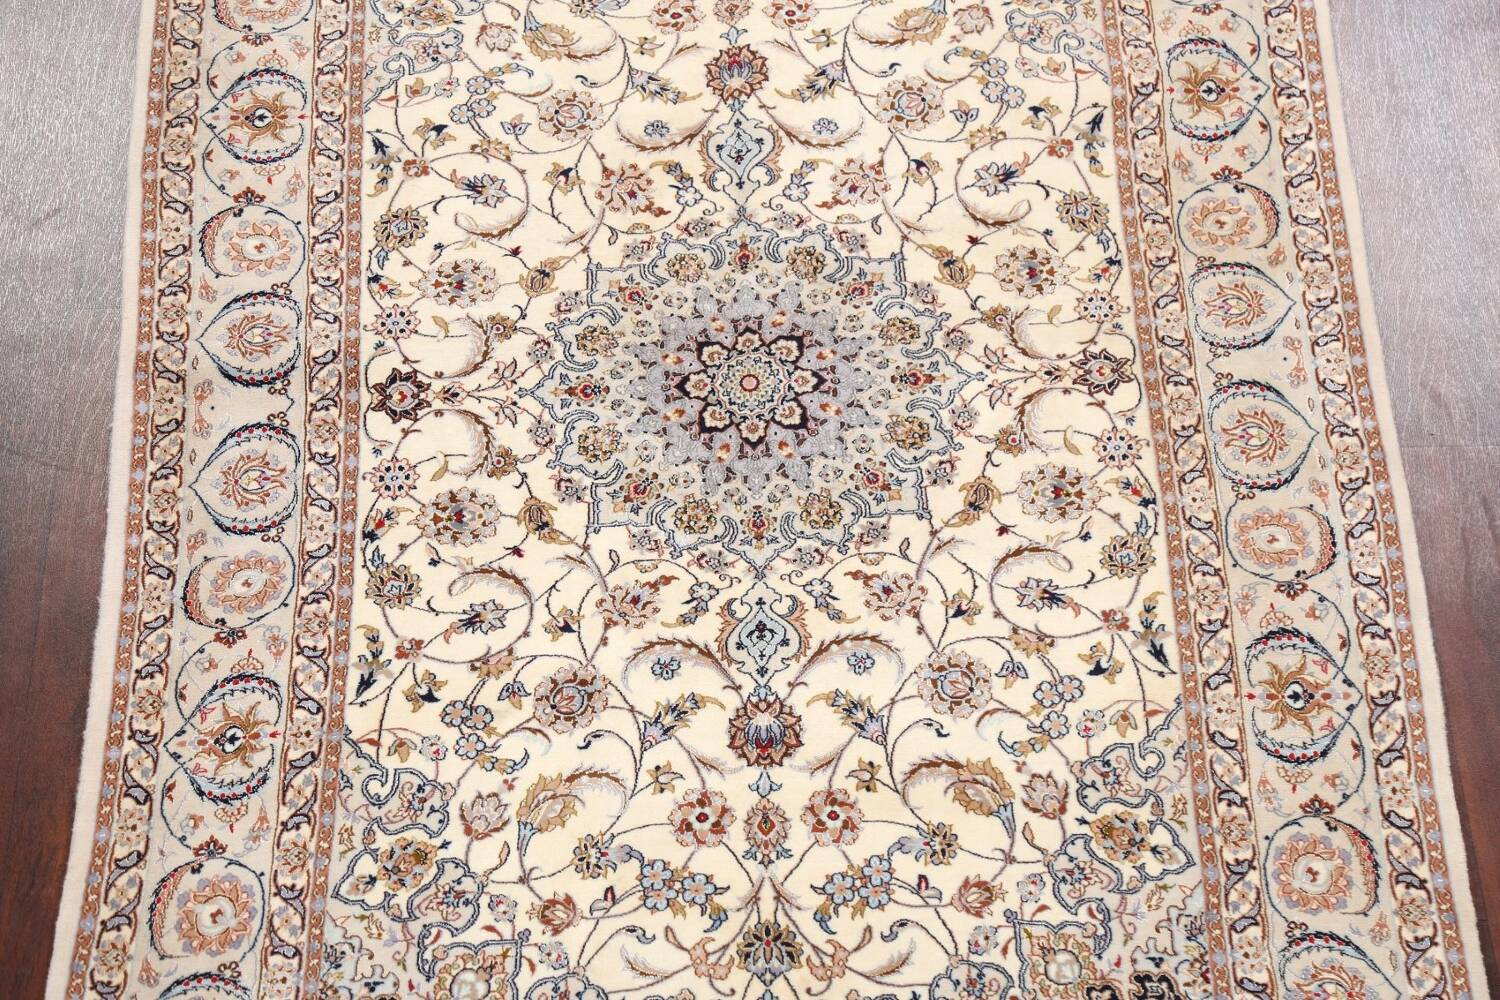 100% Vegetable Dye Floral Isfahan Persian Area Rug 5x8 image 3